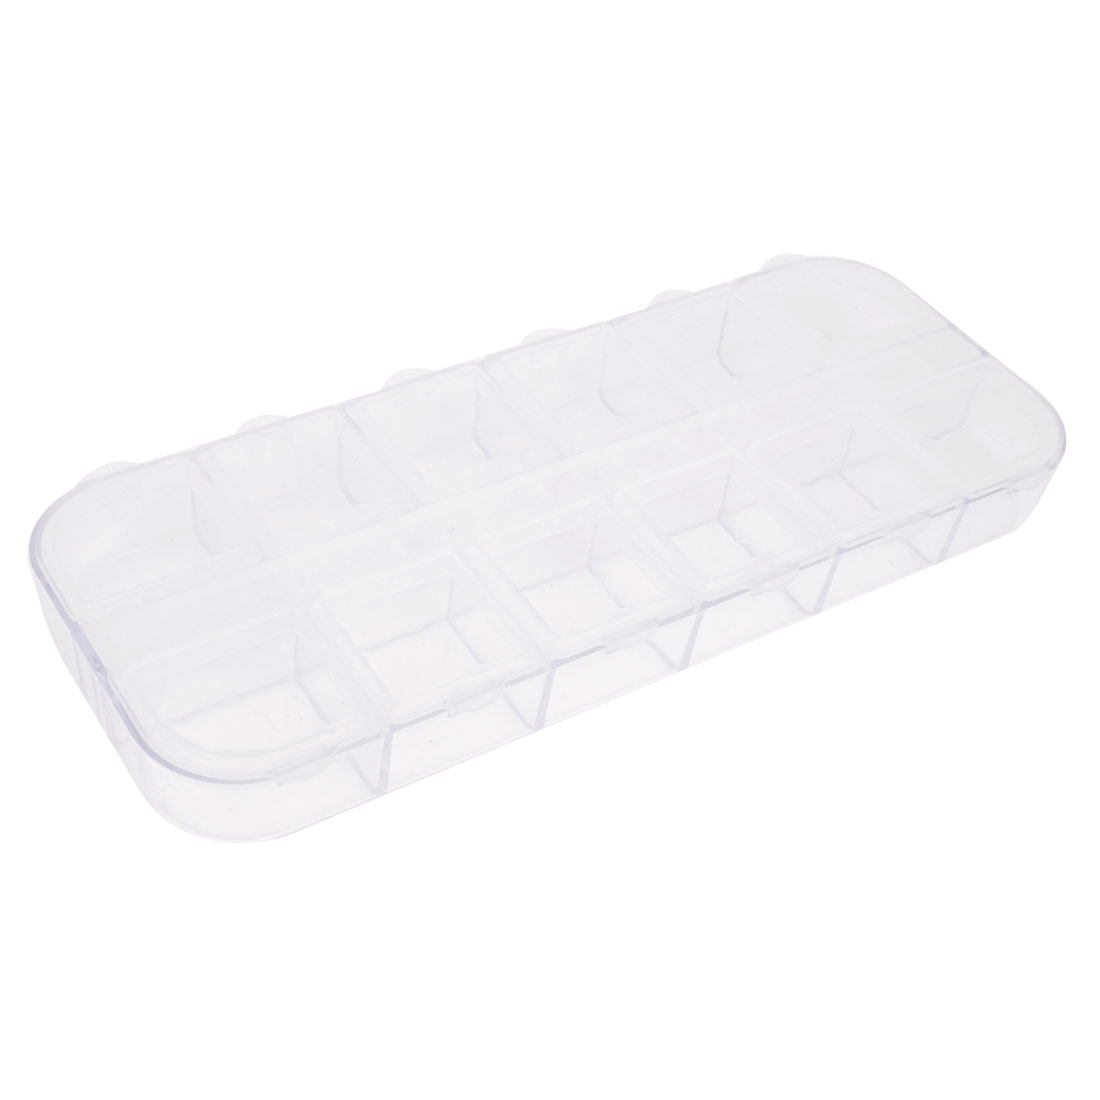 Clear Plastic 12 Slots Fishing Hook Fish Lure Bait Storage Case Holder